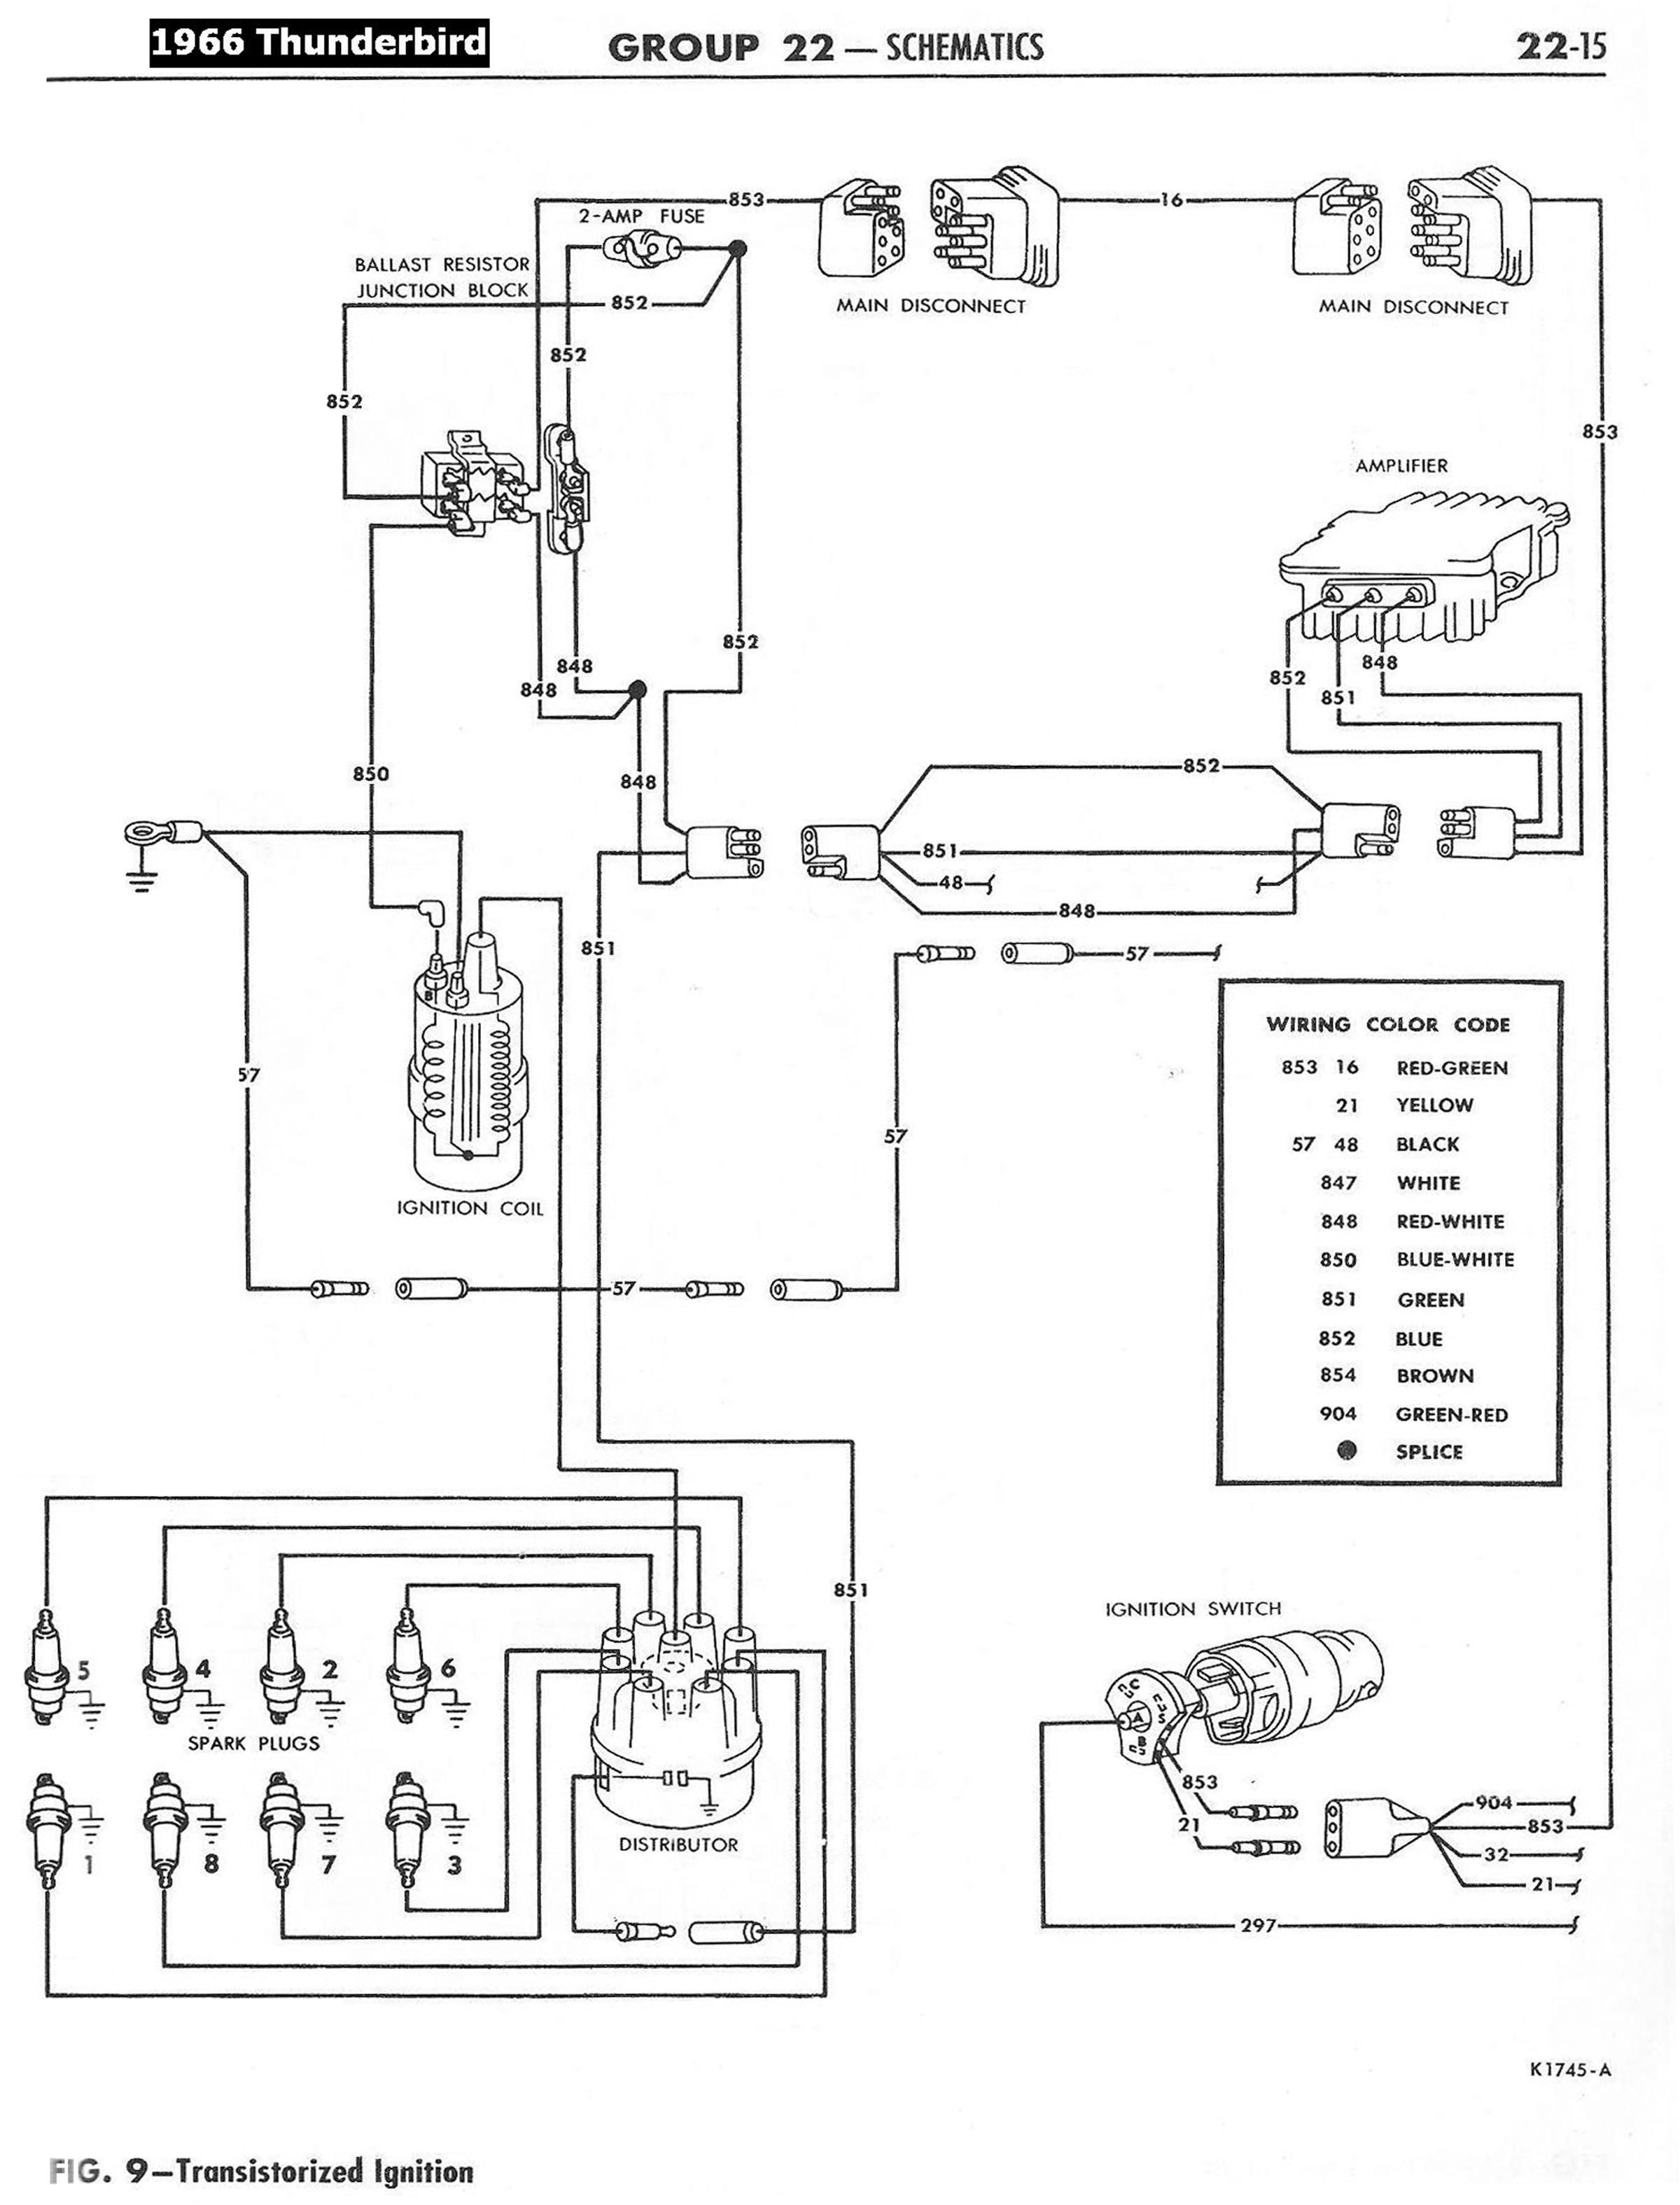 Boss Rt3 Wiring Diagram Stb9602 Libraries Control Library1958 68 Ford Electrical Schematics Rh Squarebirds Org Msd